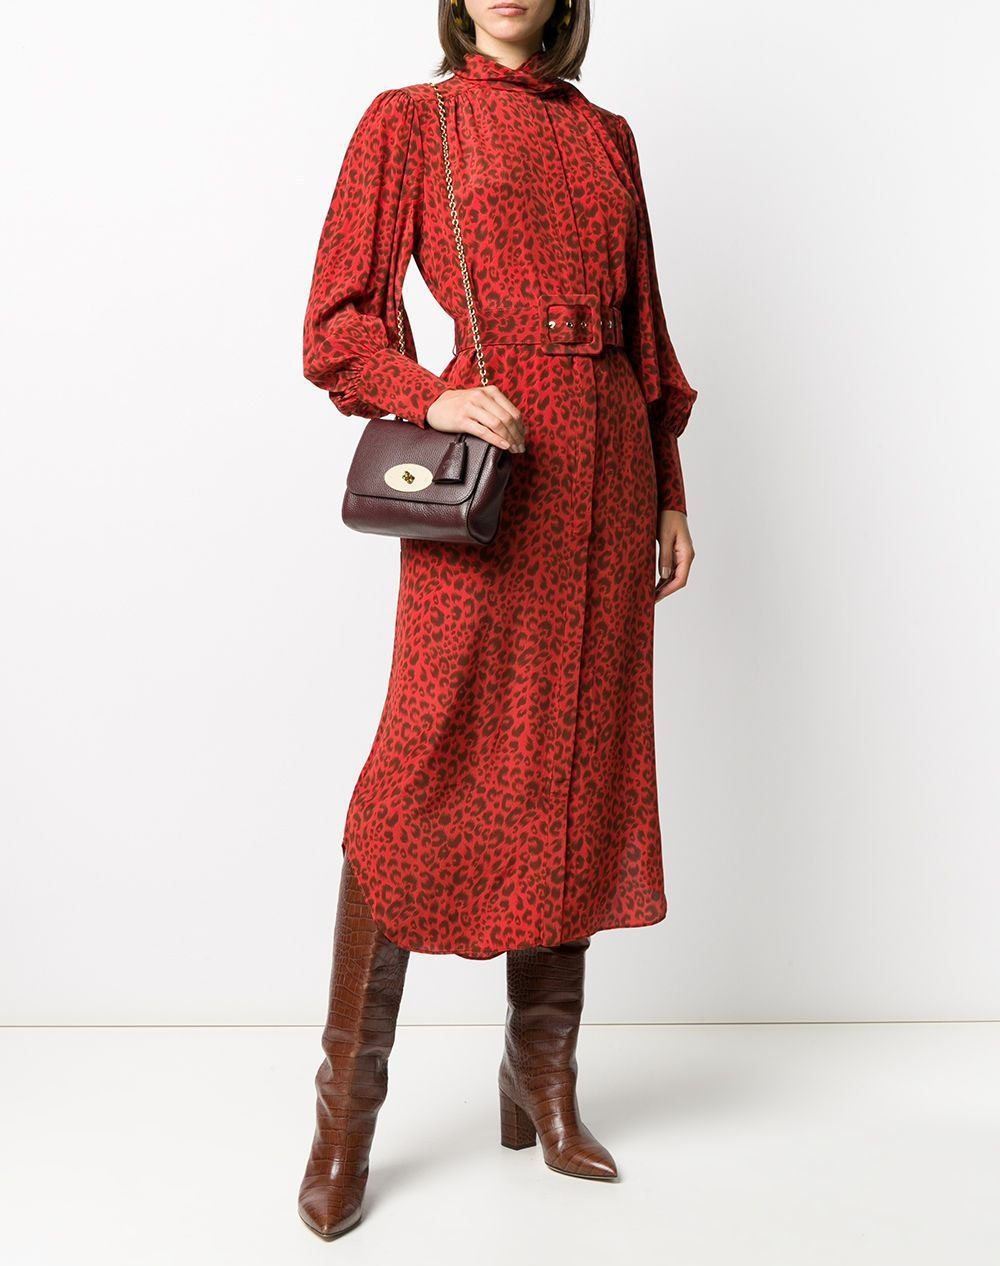 The Mulberry Lily bag is an effortless everyday bag that can take you from day to night